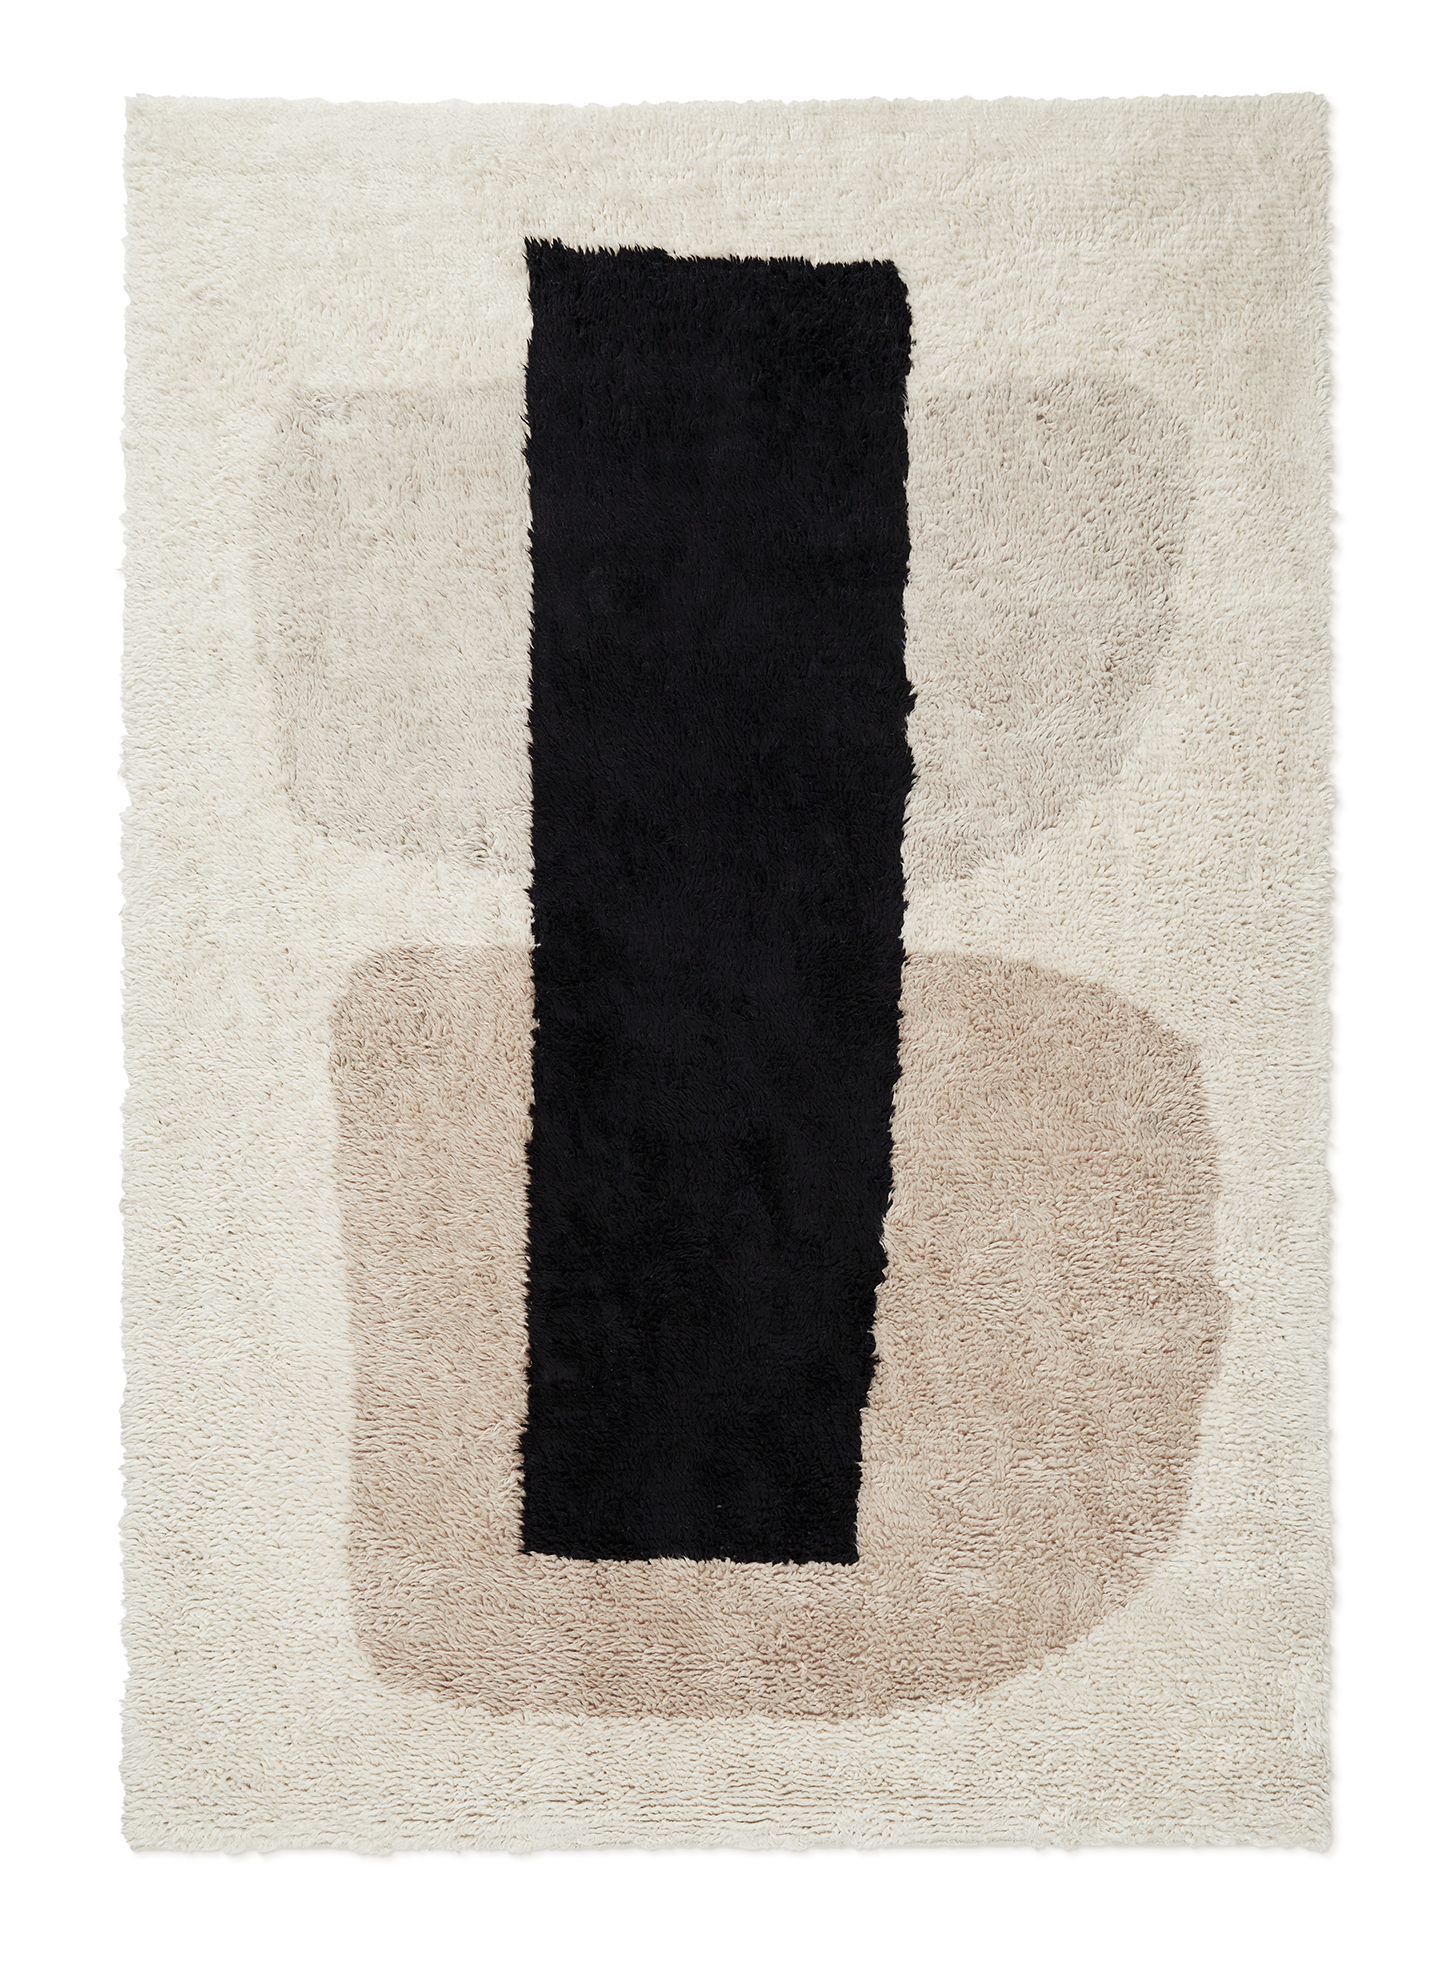 Campaign page. Product image of Monolith 1, a shaggy wool rug with an abstract pattern.